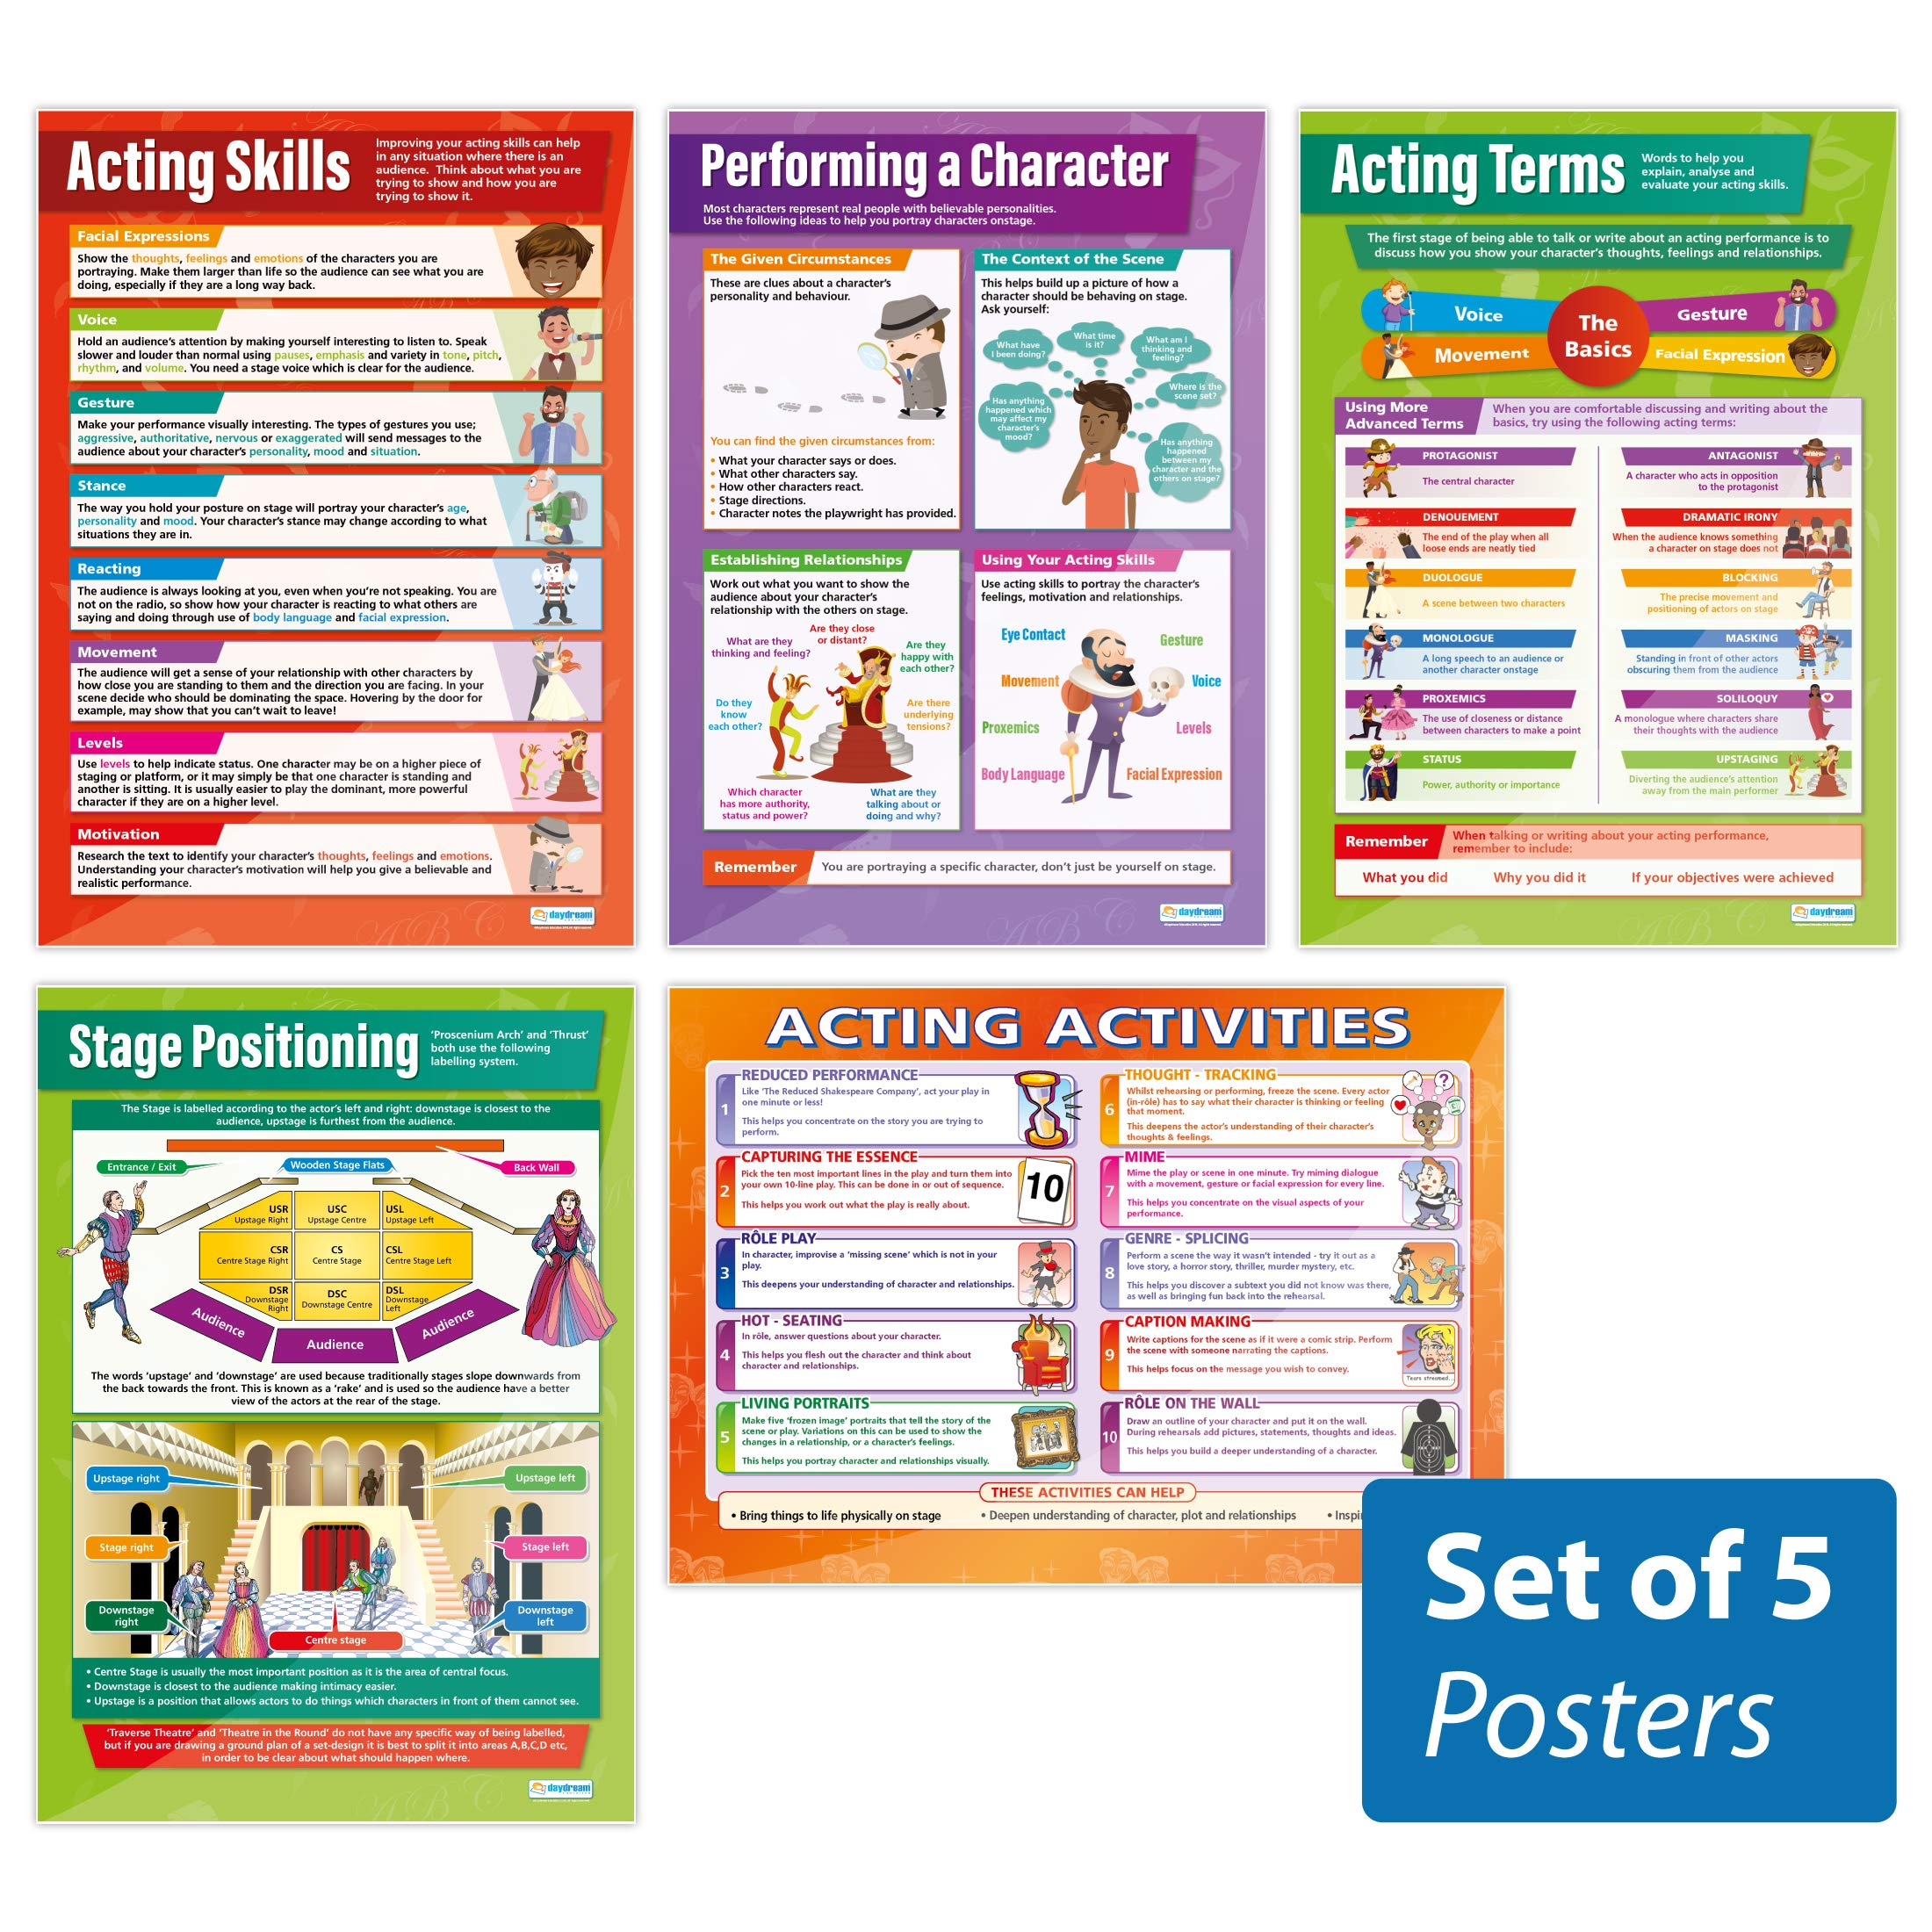 Acting Skills Posters - Set of 5 | Drama Posters | Gloss Paper Measuring 33'' x 23.5'' | Theater Posters for The Classroom | Education Charts by Daydream Education by Daydream Education